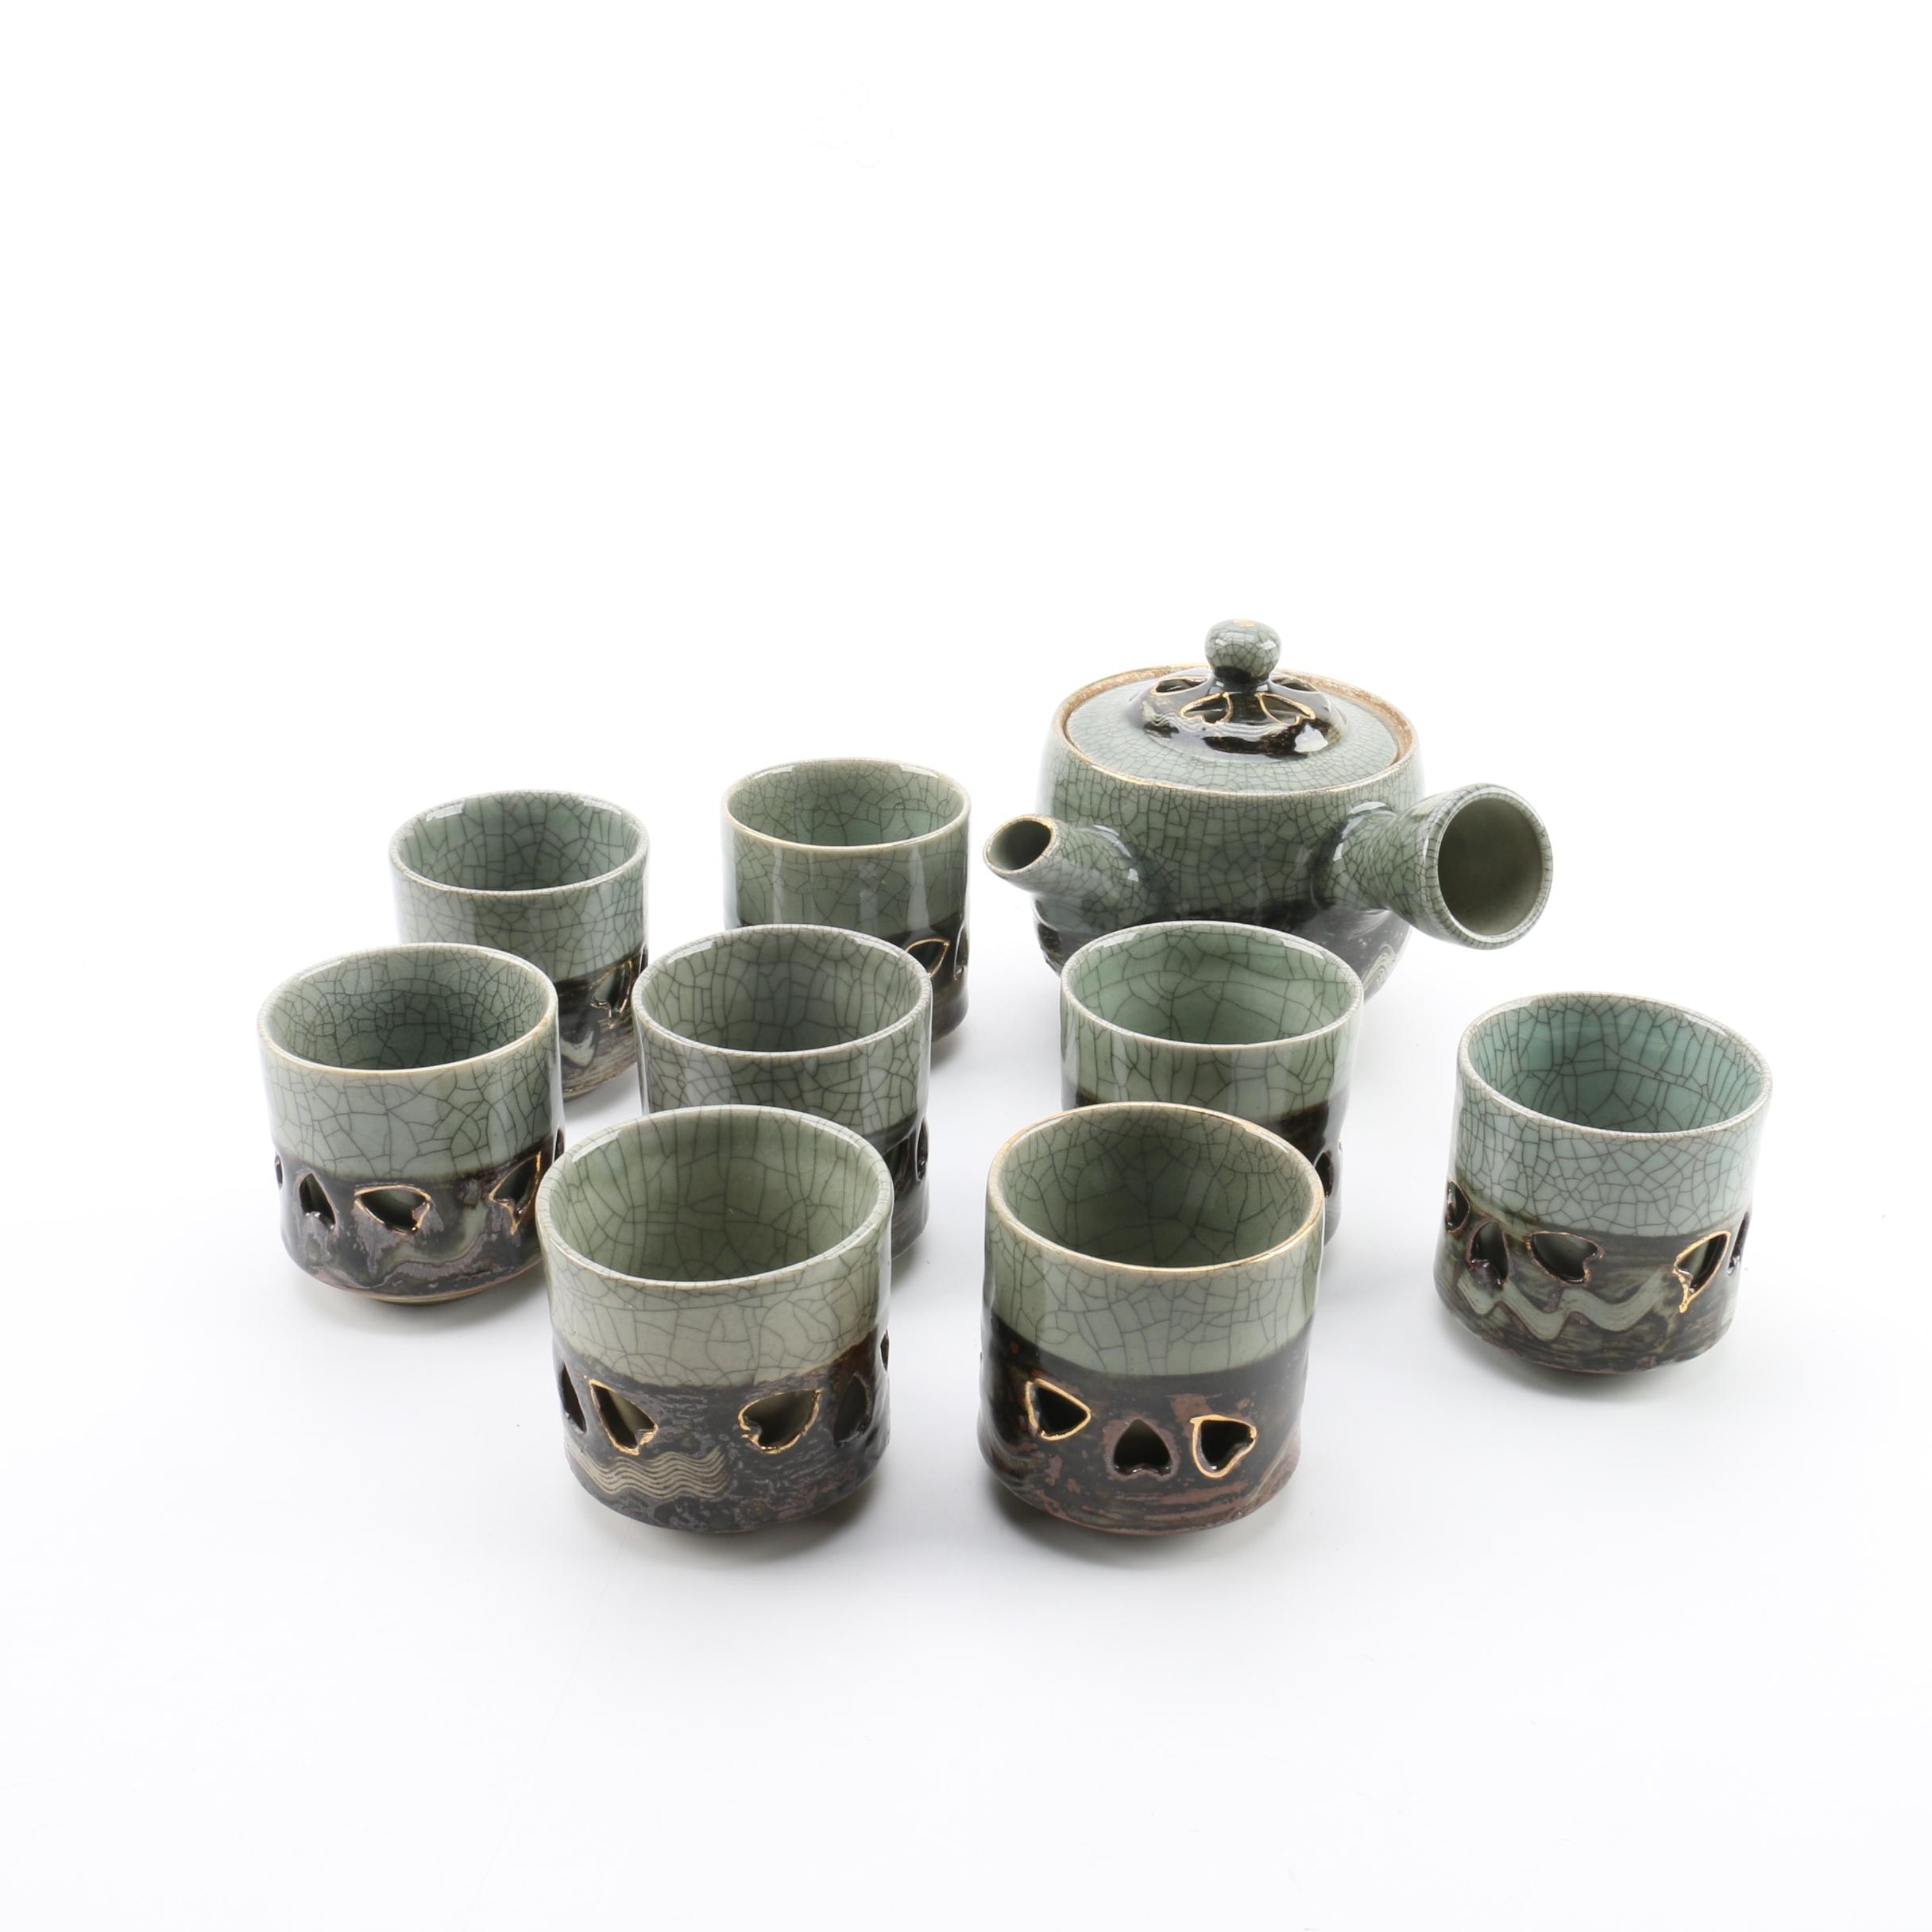 Japanese Porcelain Teapot and Cups